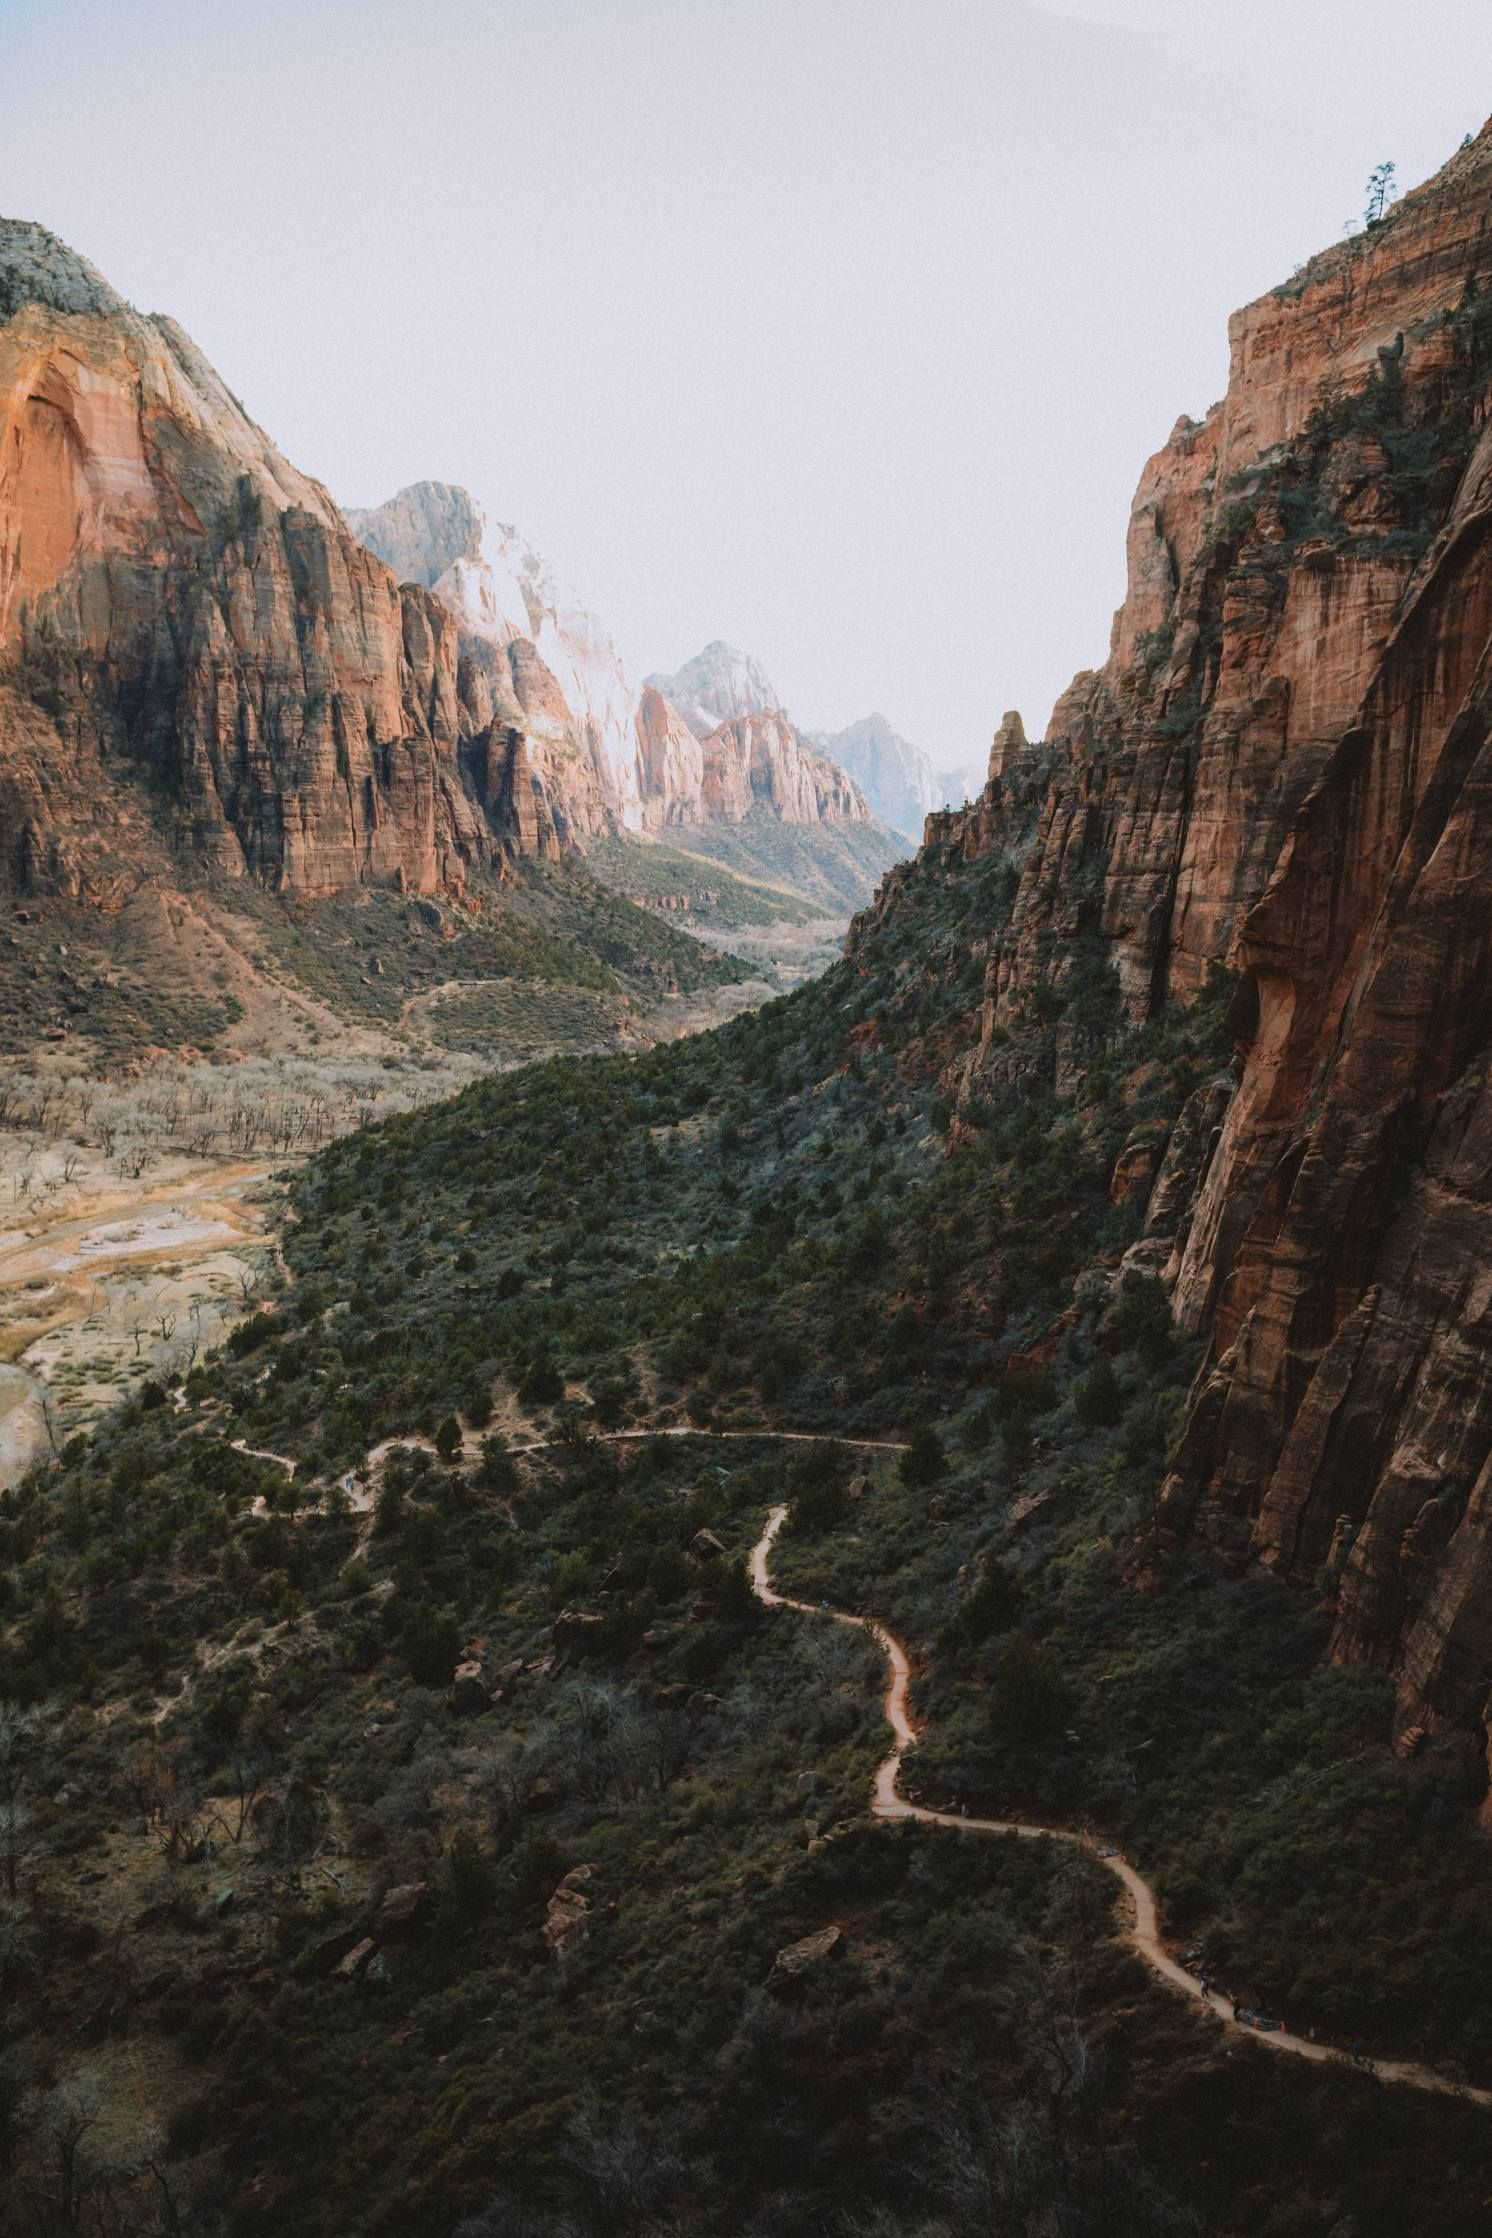 The Complete Utah National Parks Road Trip Itinerary (Hikes, Photo Spots + MORE!) - The Mandagies